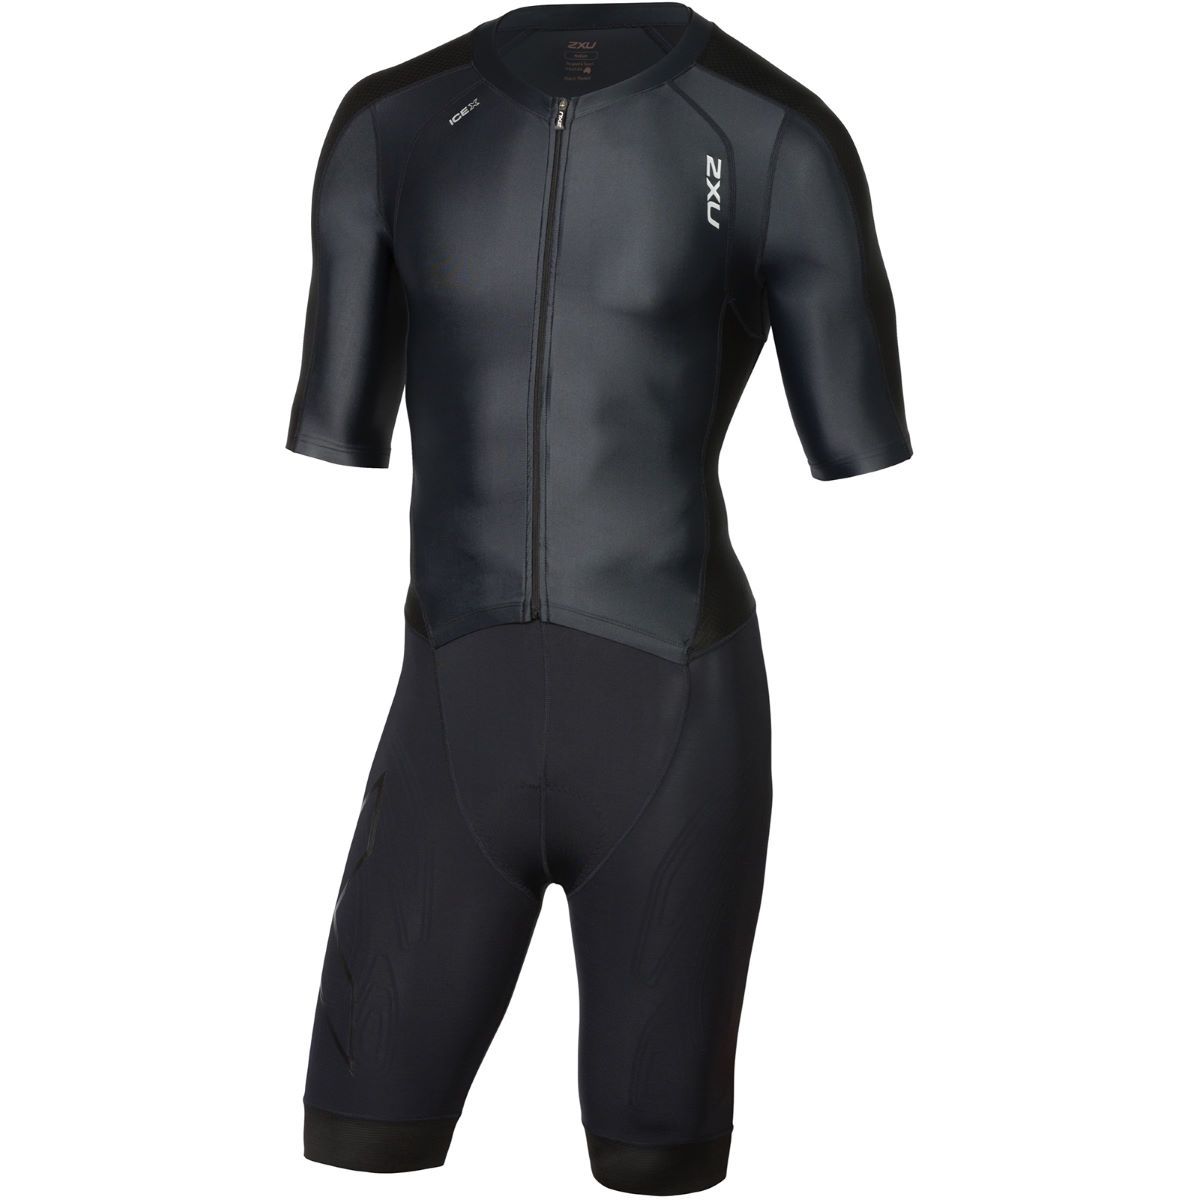 2XU Comp Full Zip Sleeved Trisuit - Trajes de triatlón